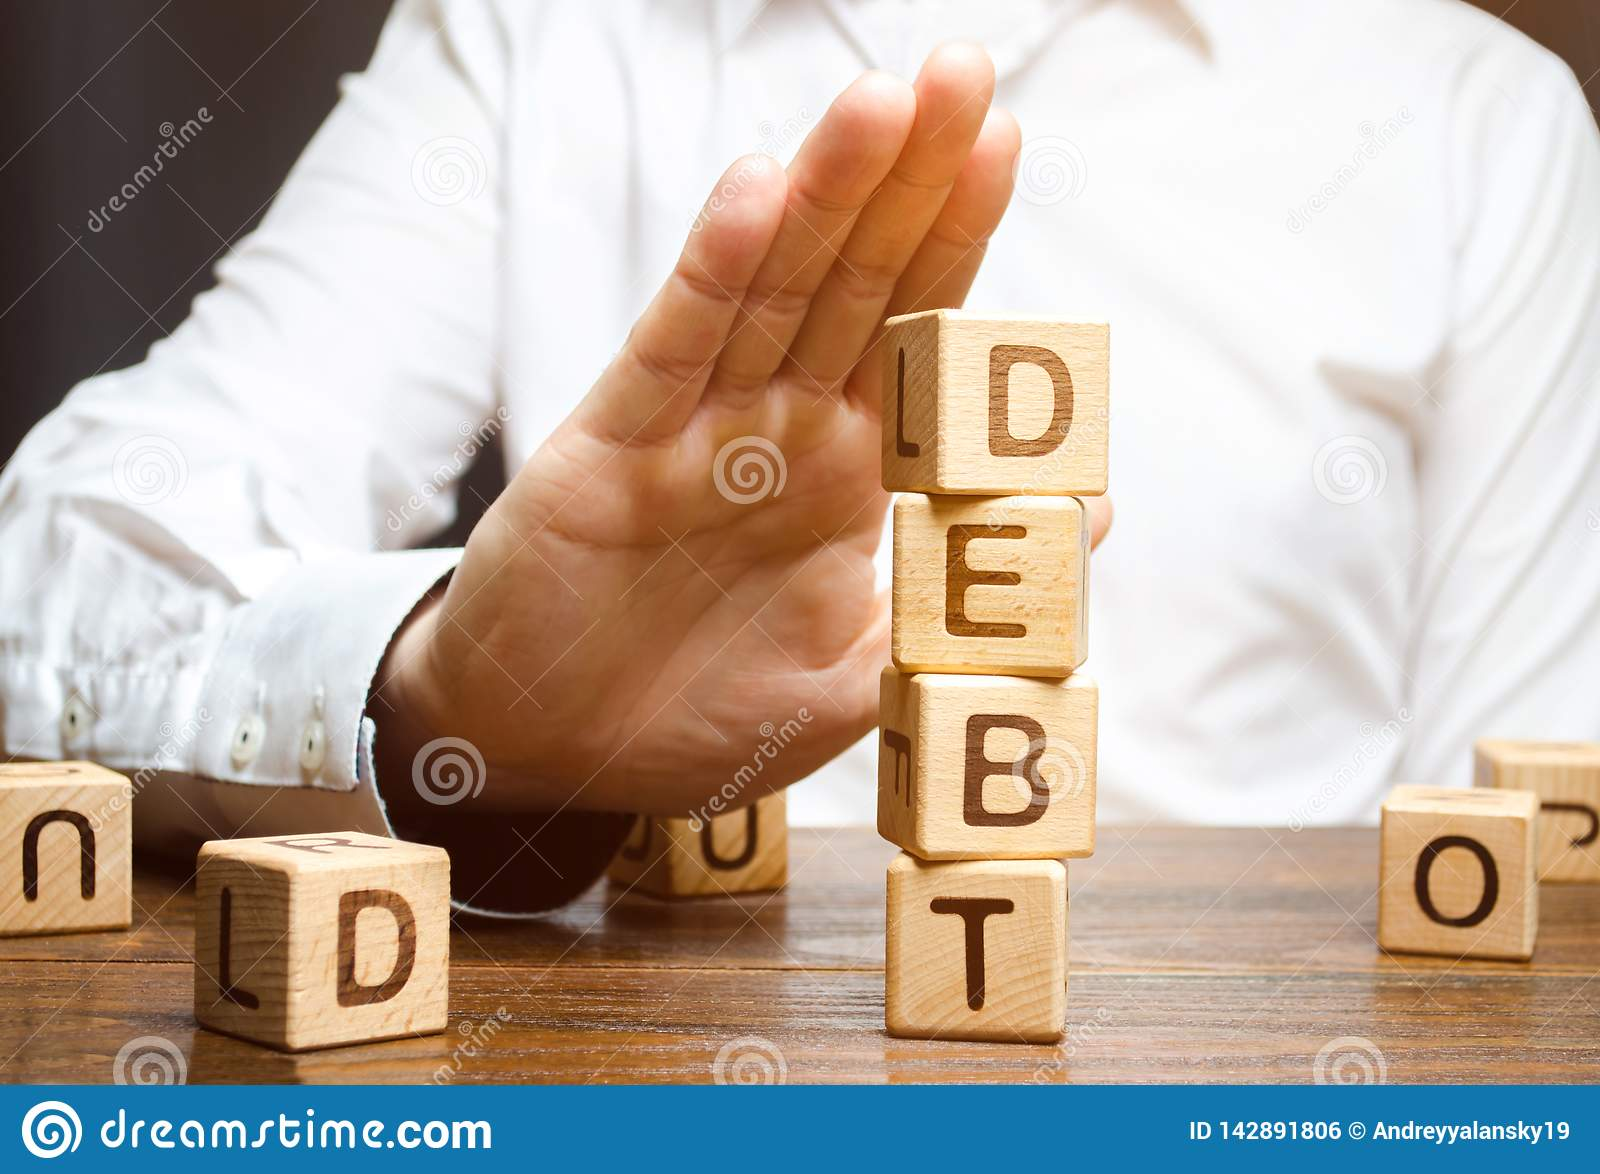 Businessman refuses to take a loan. Refusal of loans with high interest rates. Inability to pay the debt. Unprofitable terms